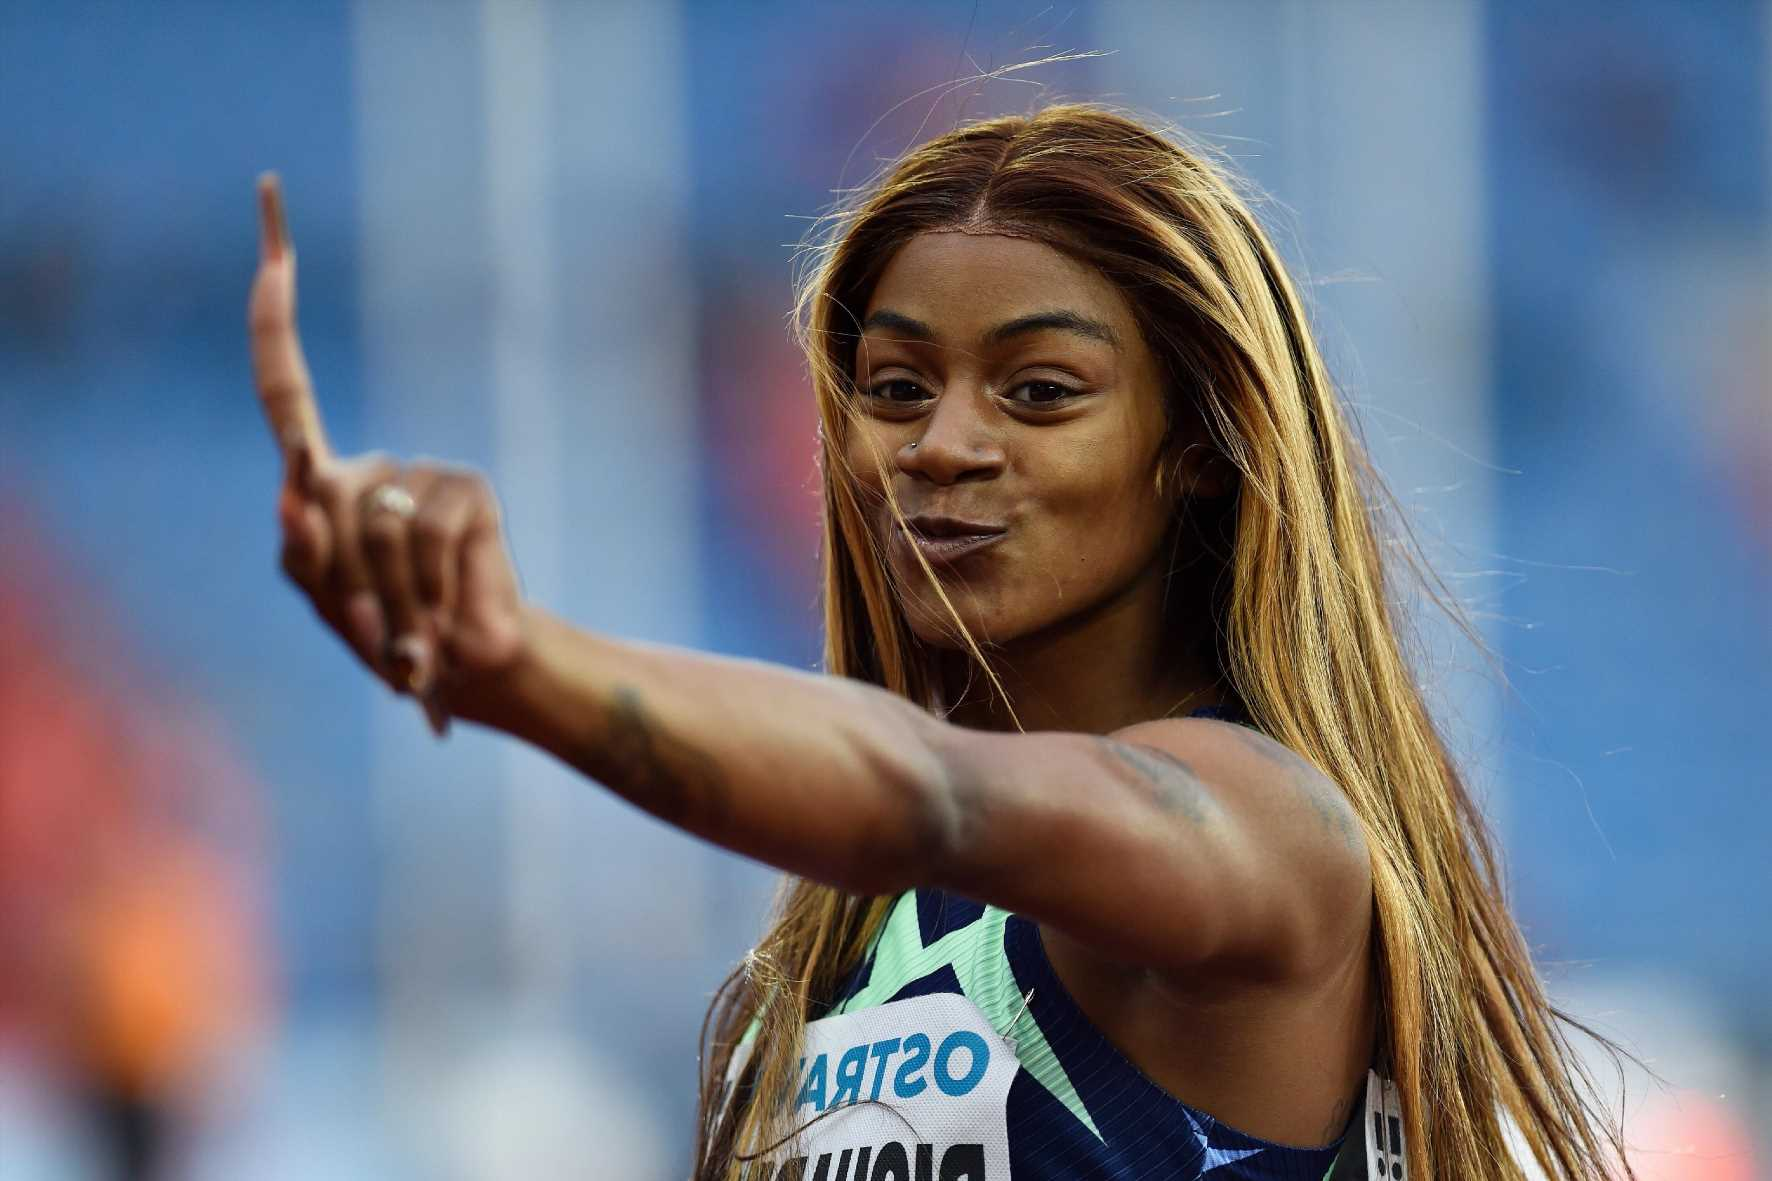 Who is USA sprinter Sha'Carri Richardson and what substance did she test positive for?